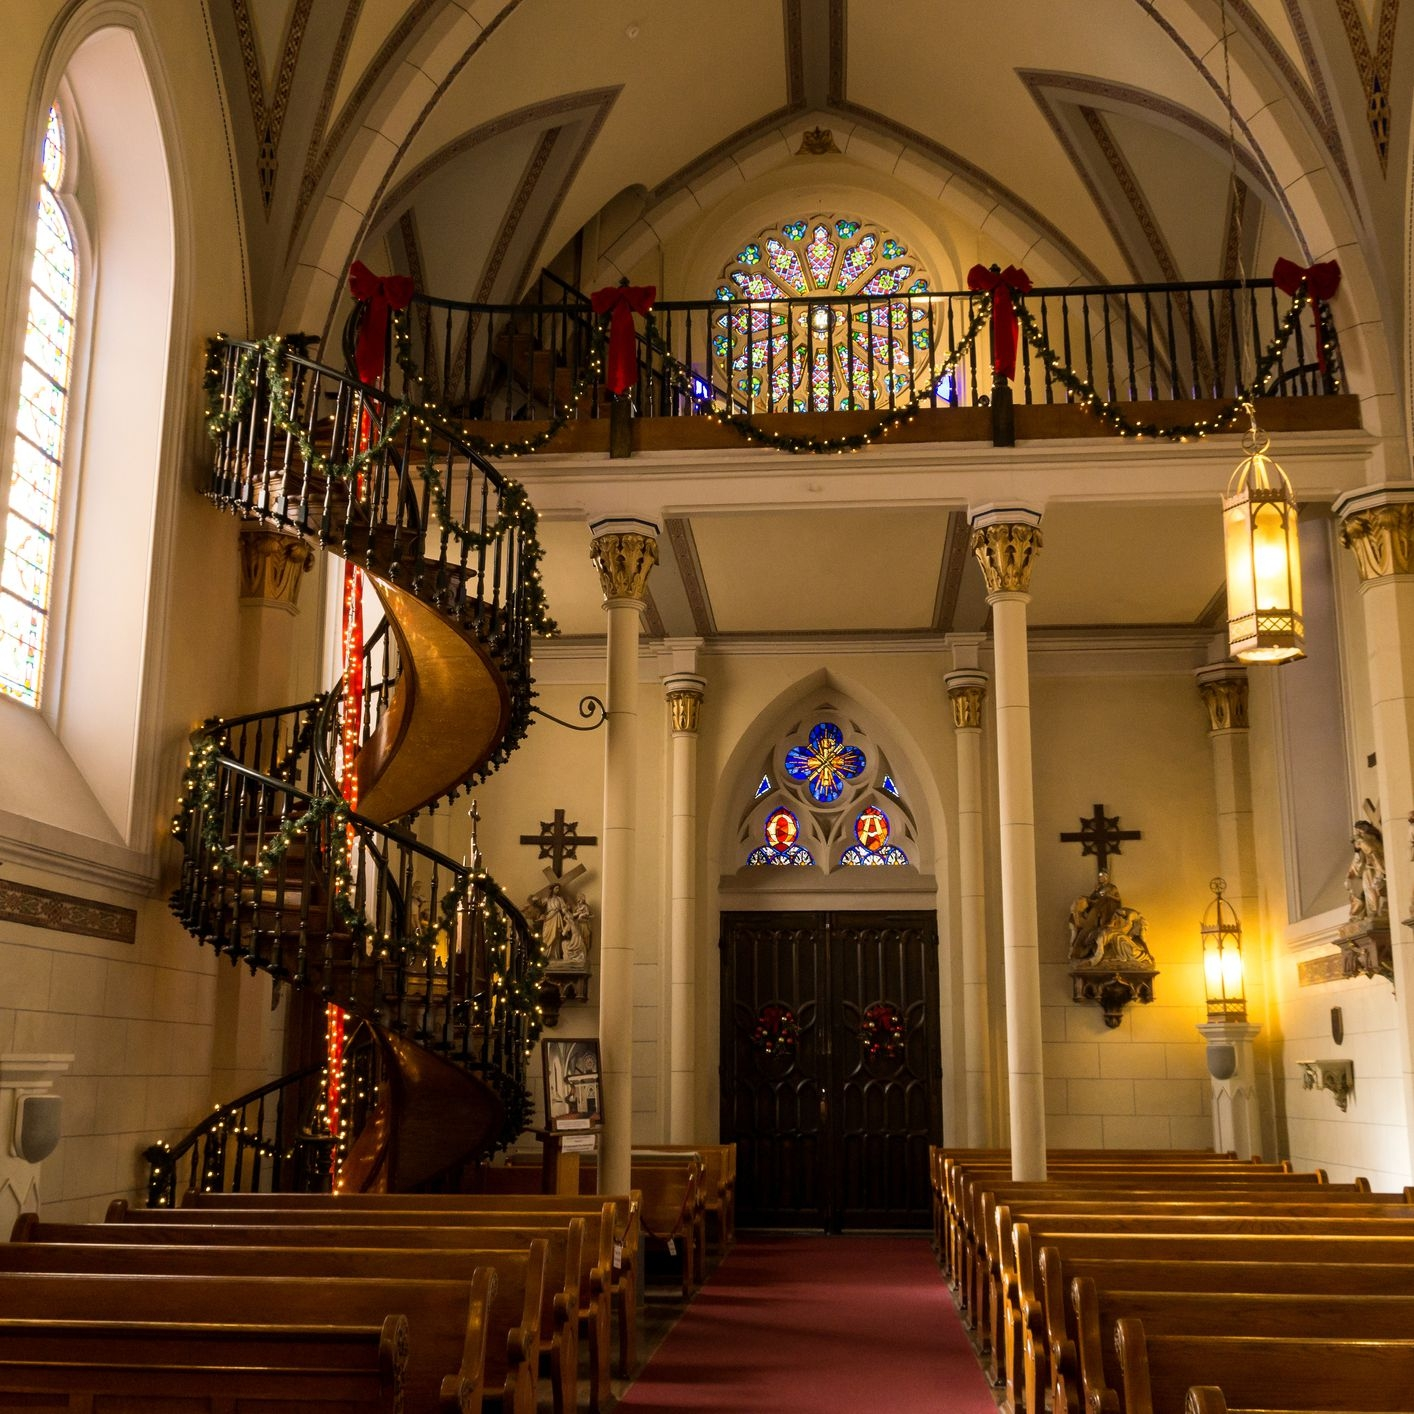 The Loretto Chapel S Miraculous Staircase | Spiral Staircase Loretto Chapel | St Joseph | Immaculate | Gothic | Dangerous | Medieval